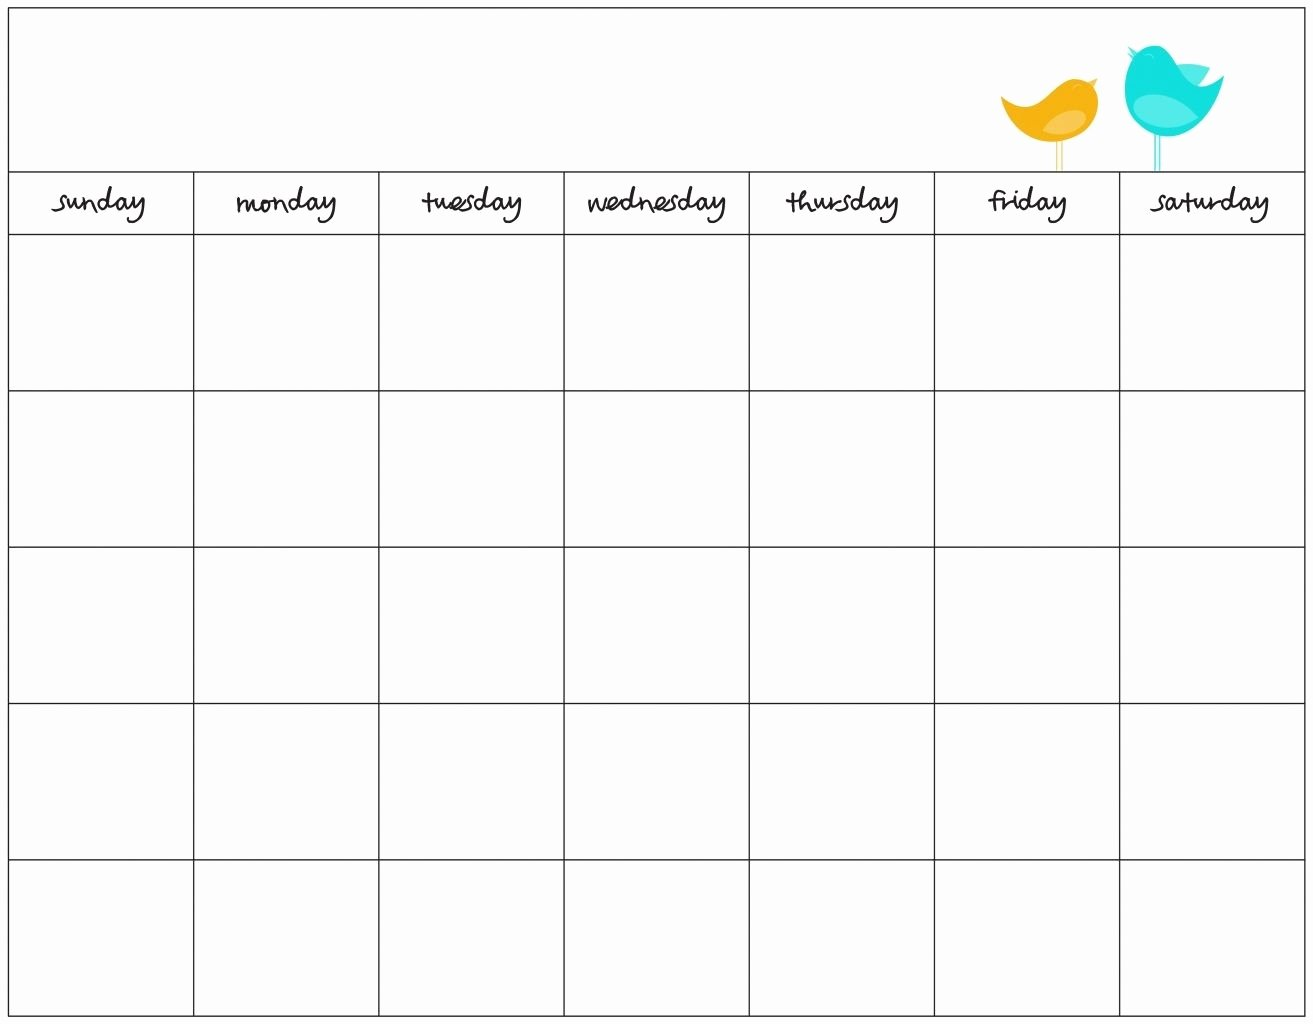 7 Day Work Schedule Template Inspirational 7 Day Work Schedules Examples – Calendar Printable